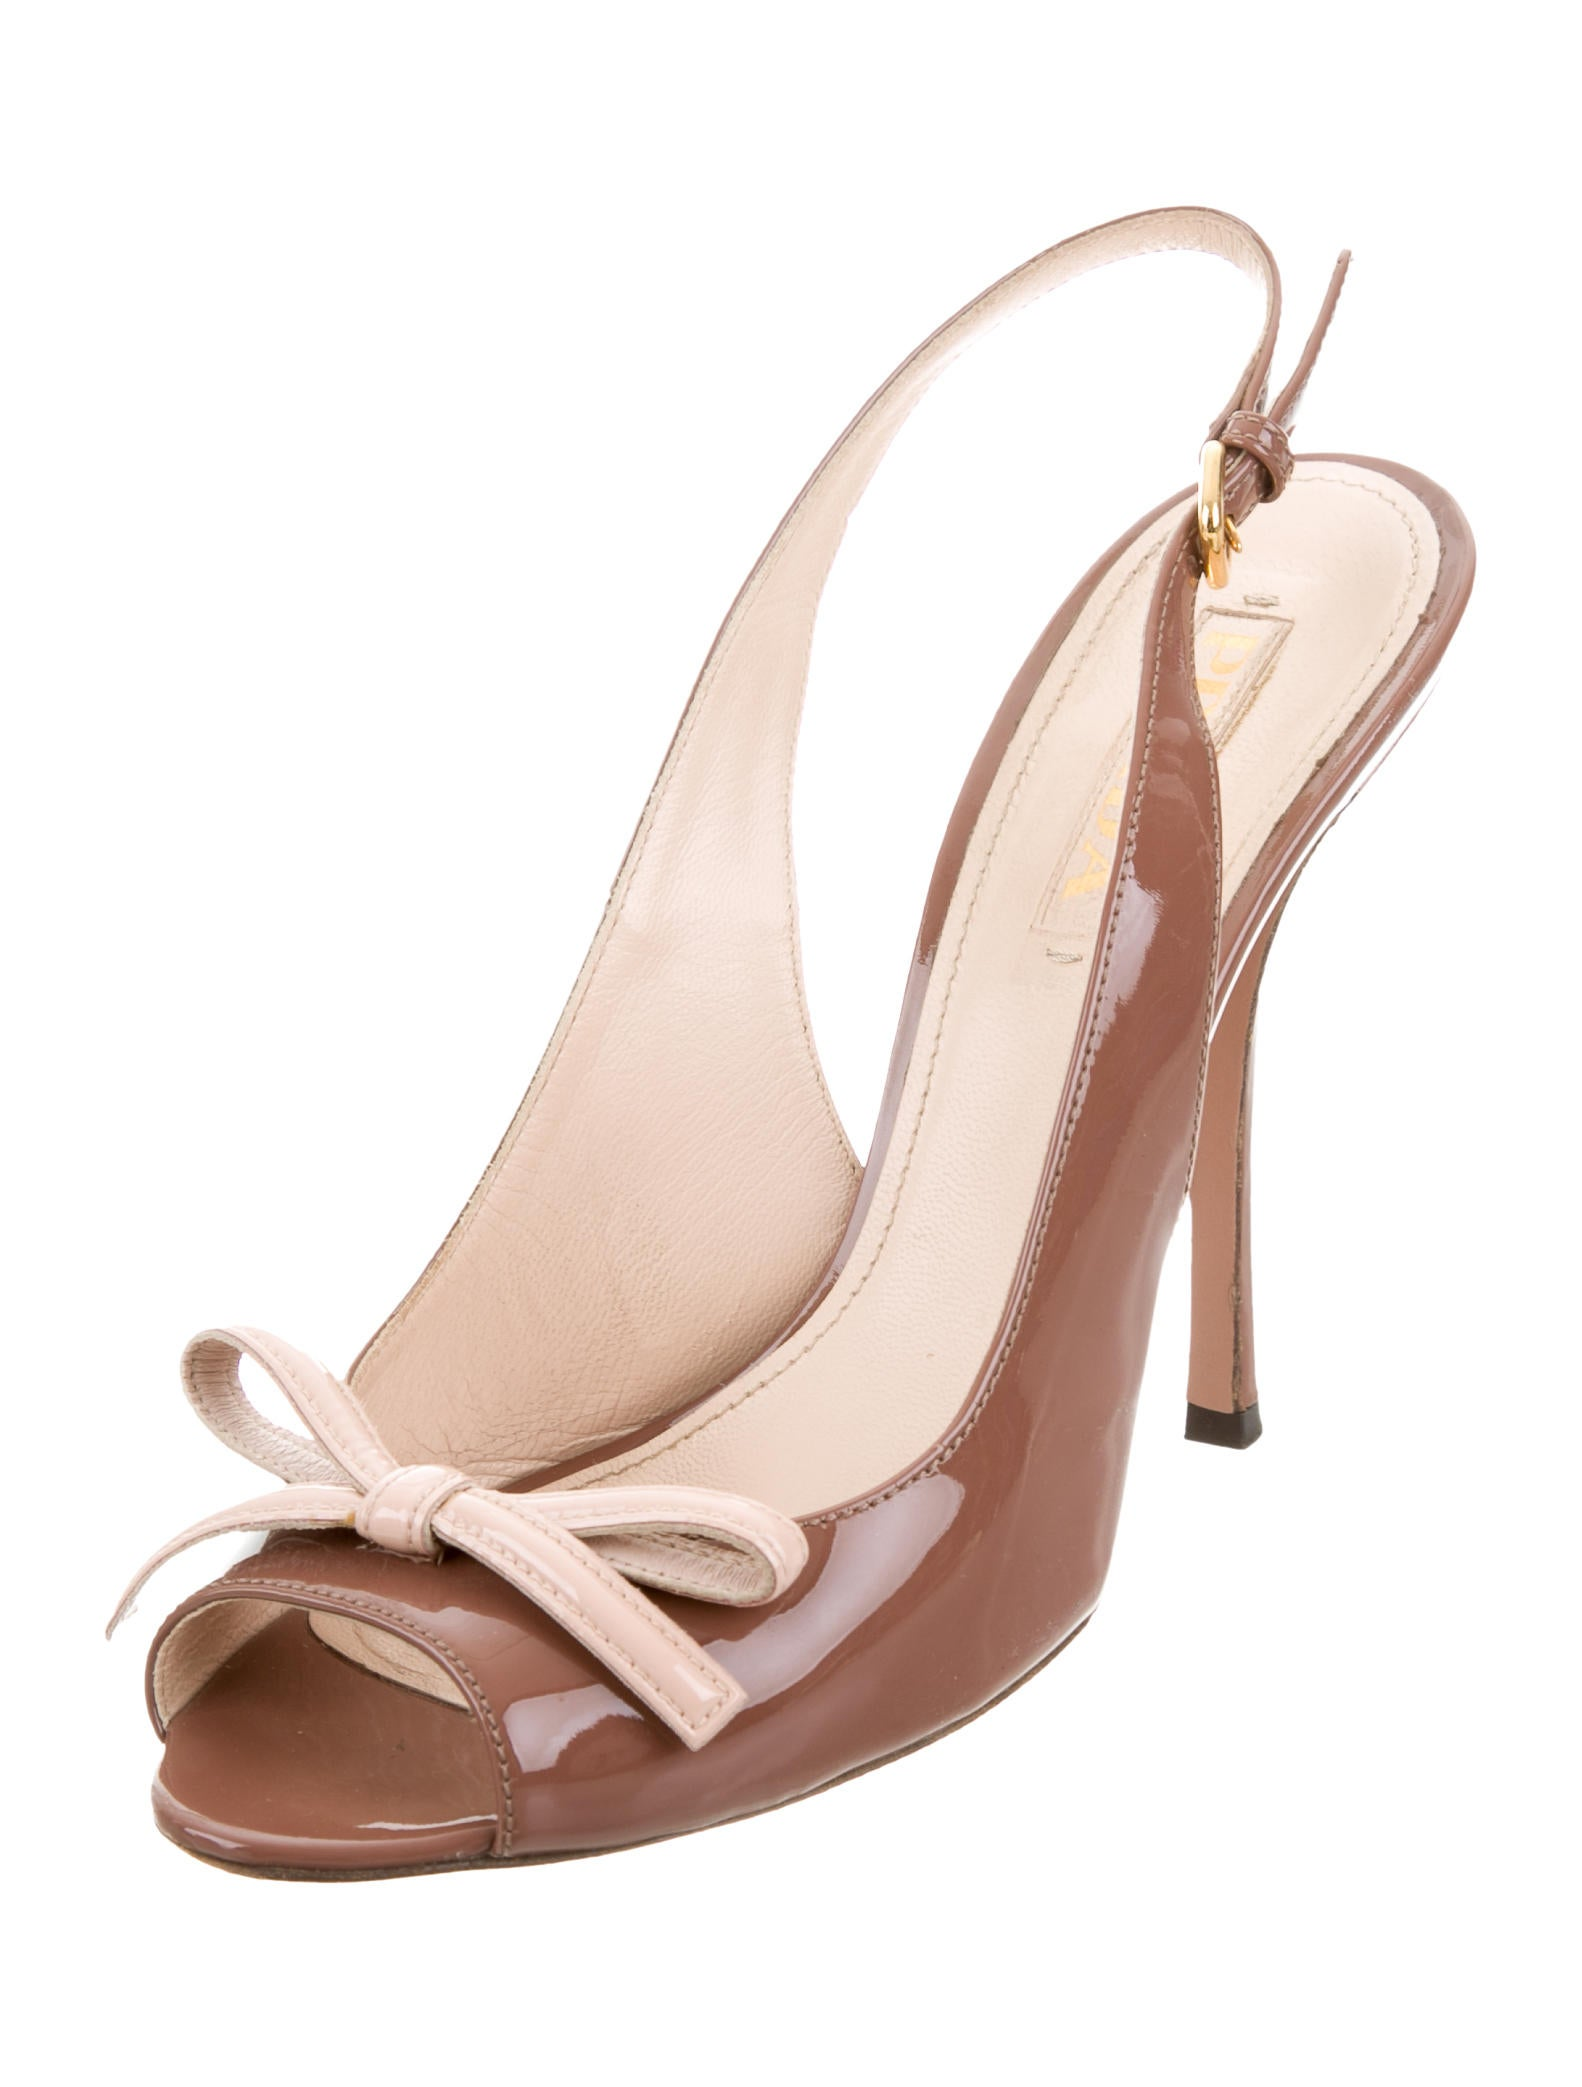 Marks On Nude Patent Leather Shoes